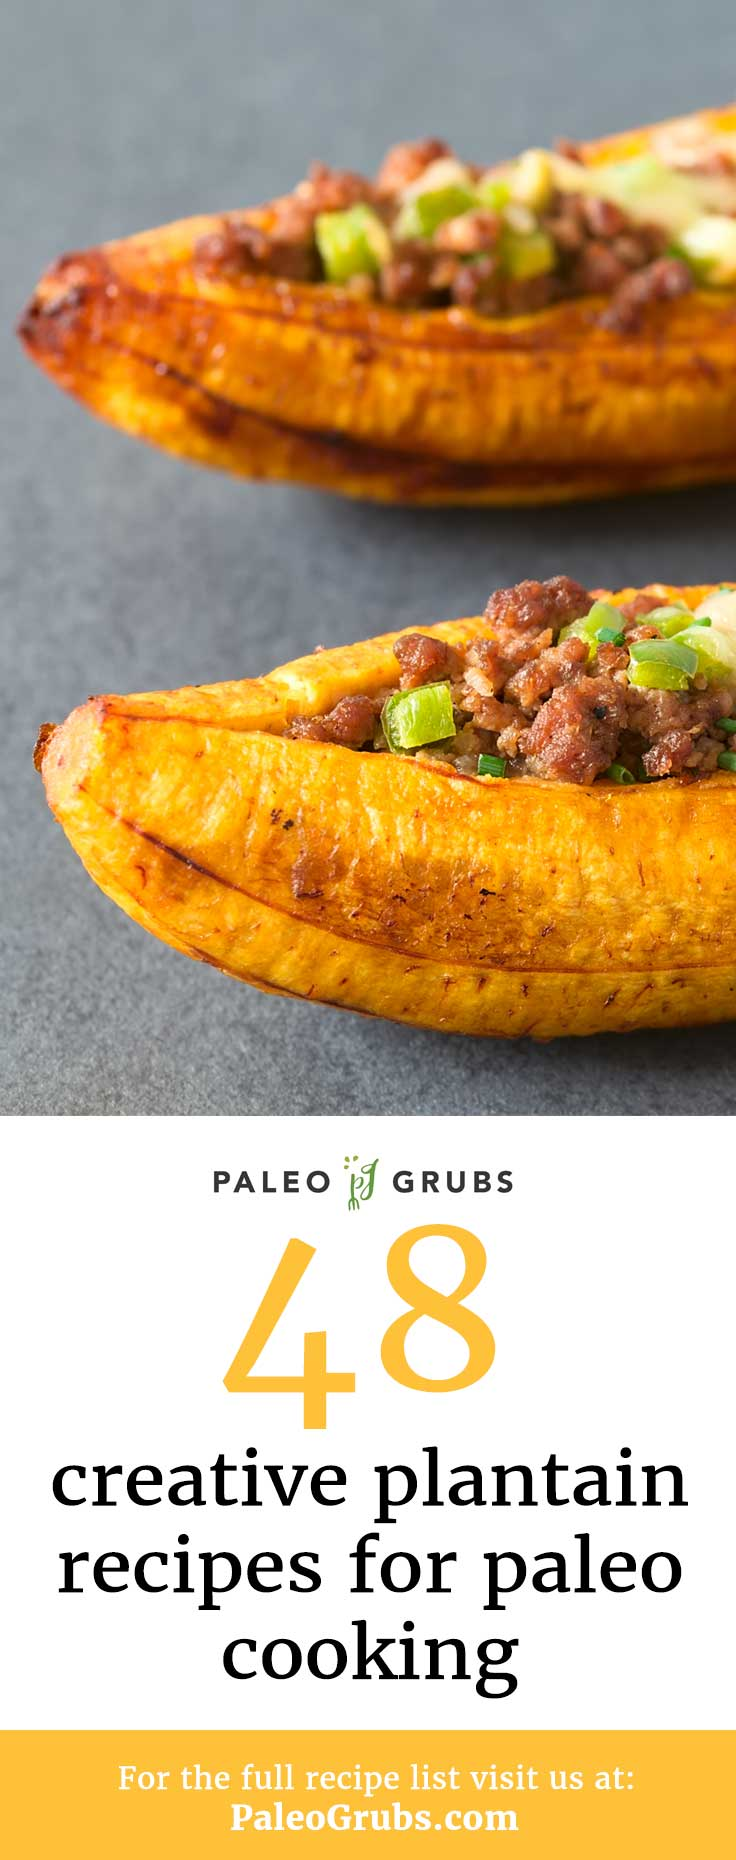 Plantains make a perfect substitute for potato in Paleo cooking! Here is a list of my favorite plantain recipes that use this fruit as a creative Paleo substitute.